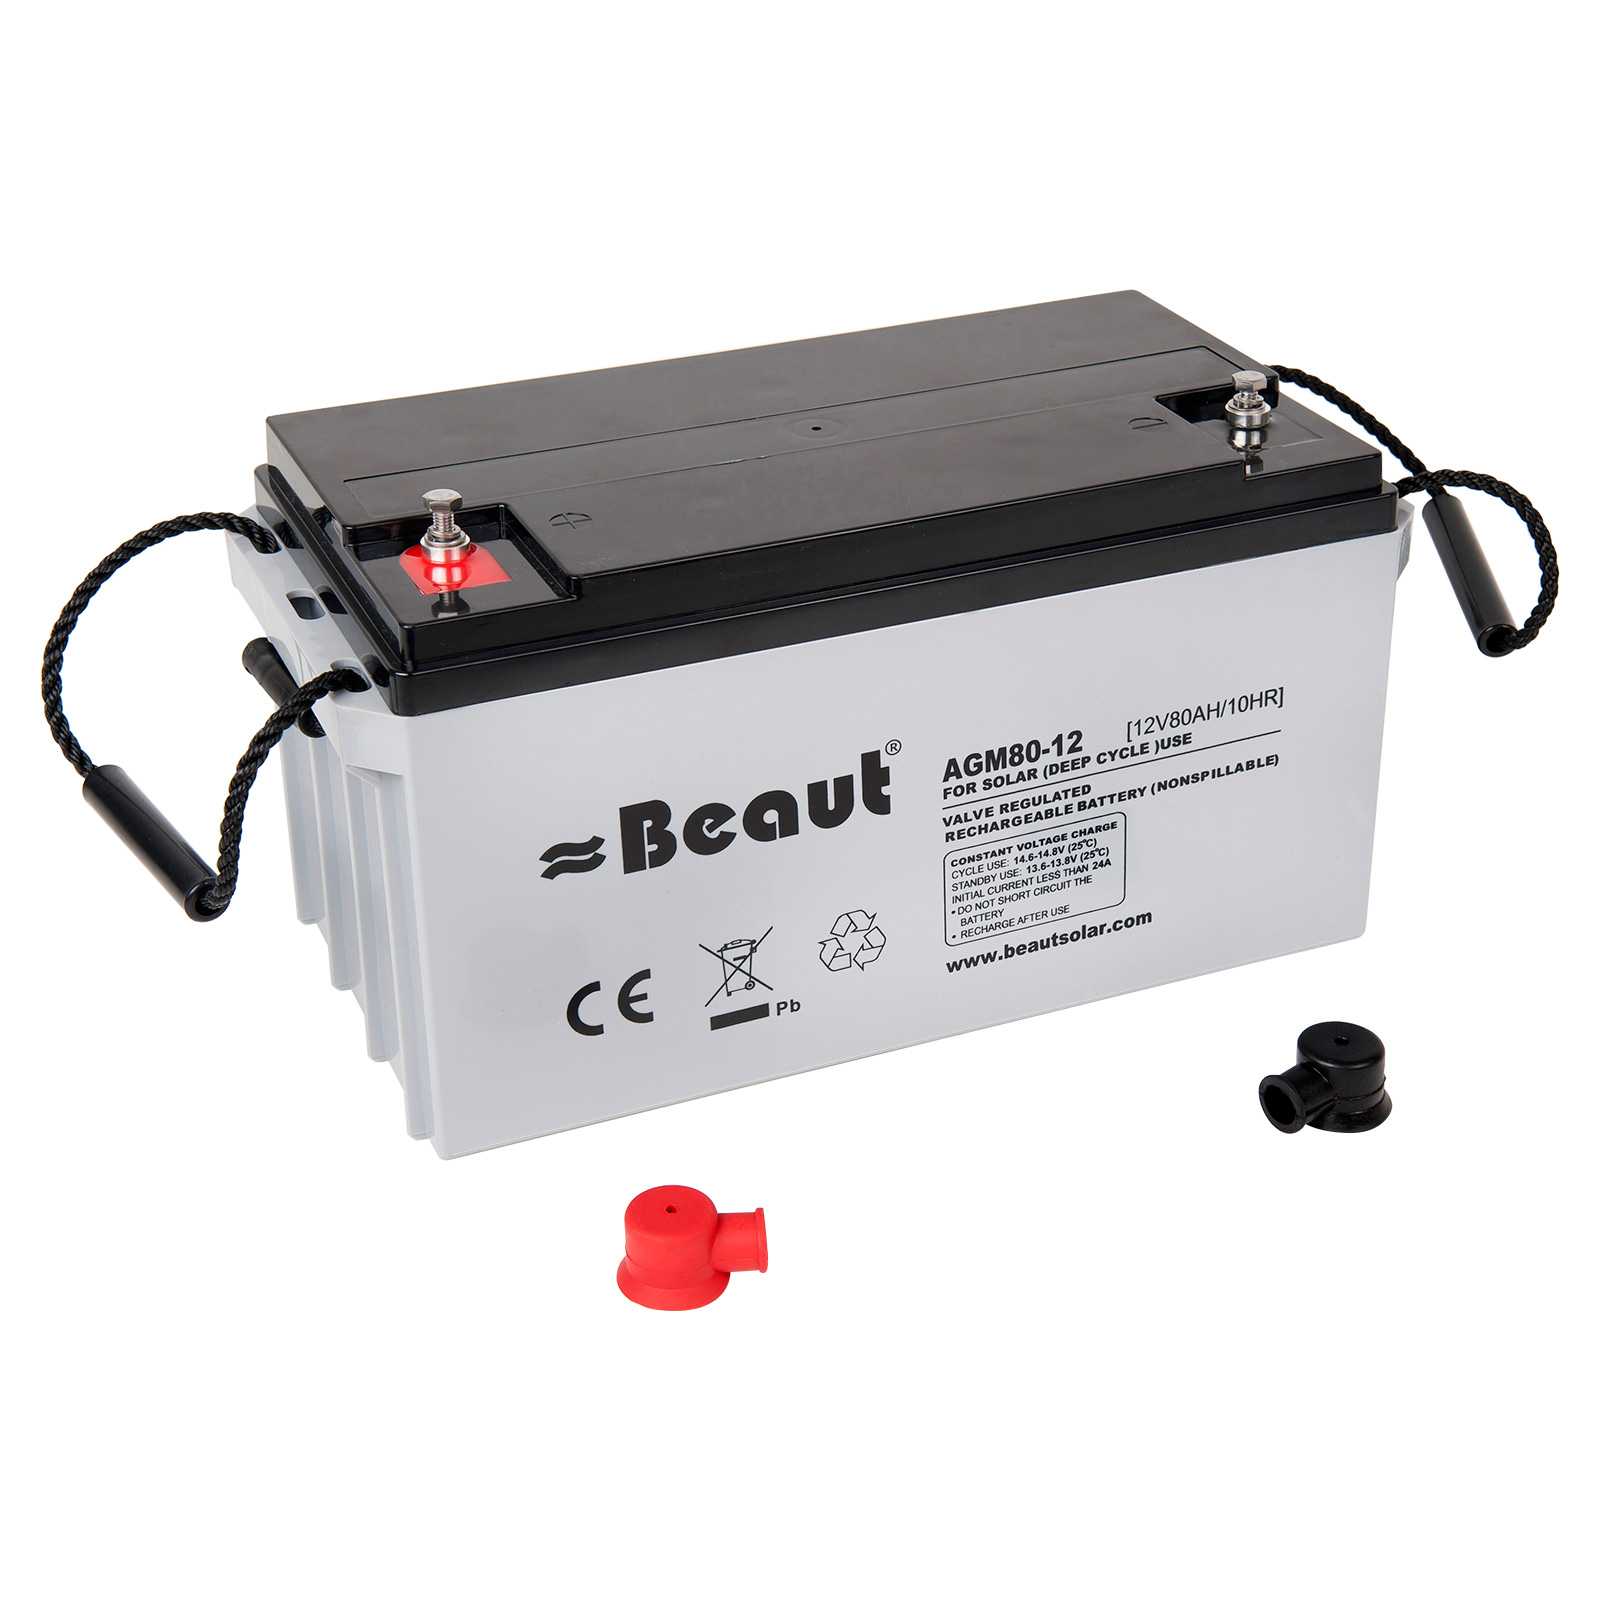 Solar Batterie Beaut 80 A 12 Volt AGM 350x167x180 mm